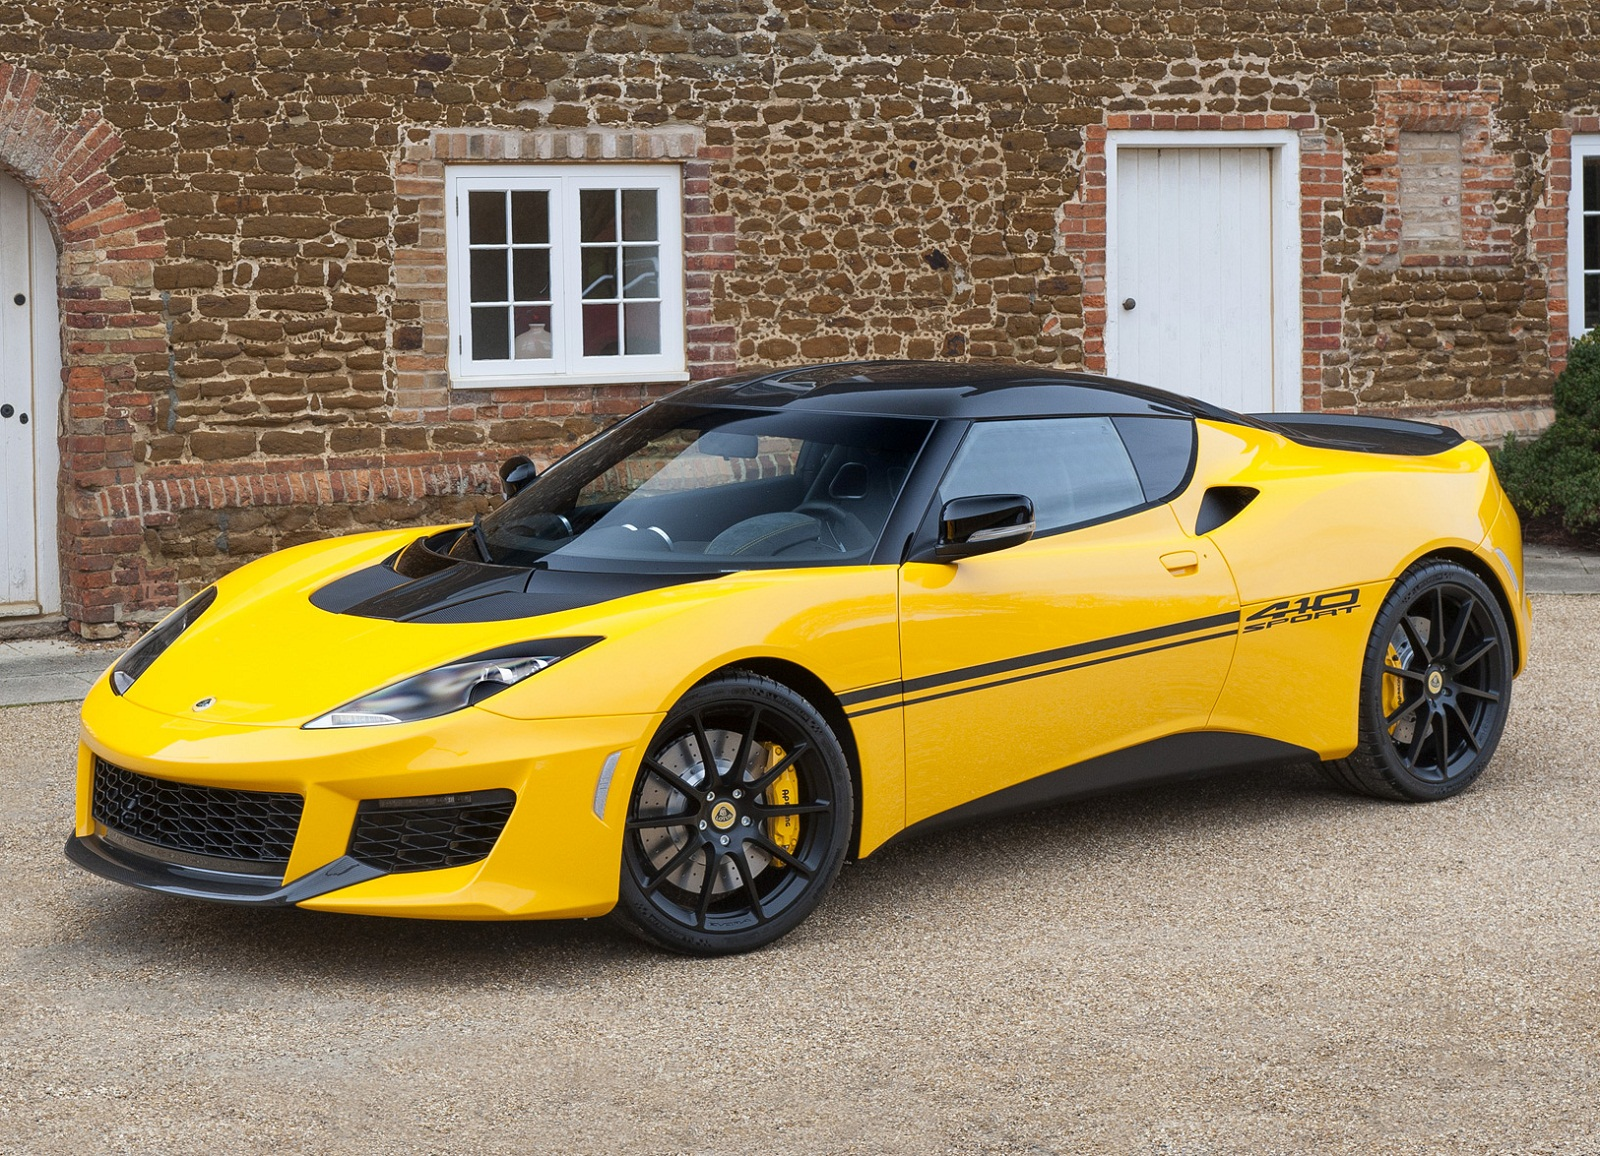 64 The Best 2020 The Lotus Evora Model